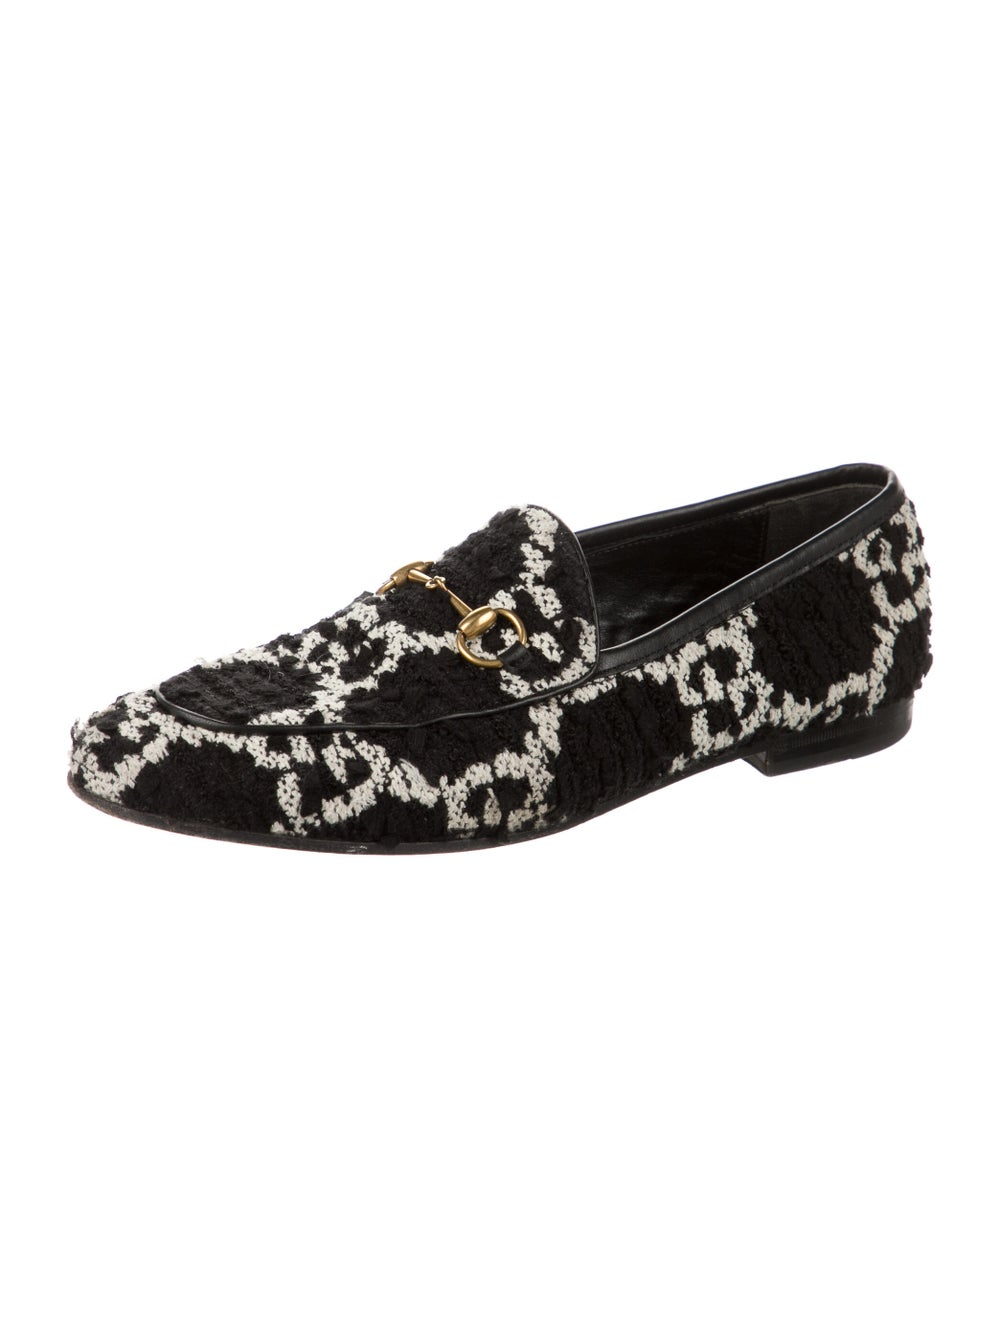 Gucci Horsebit Accent Patterned Loafers Black - image 2